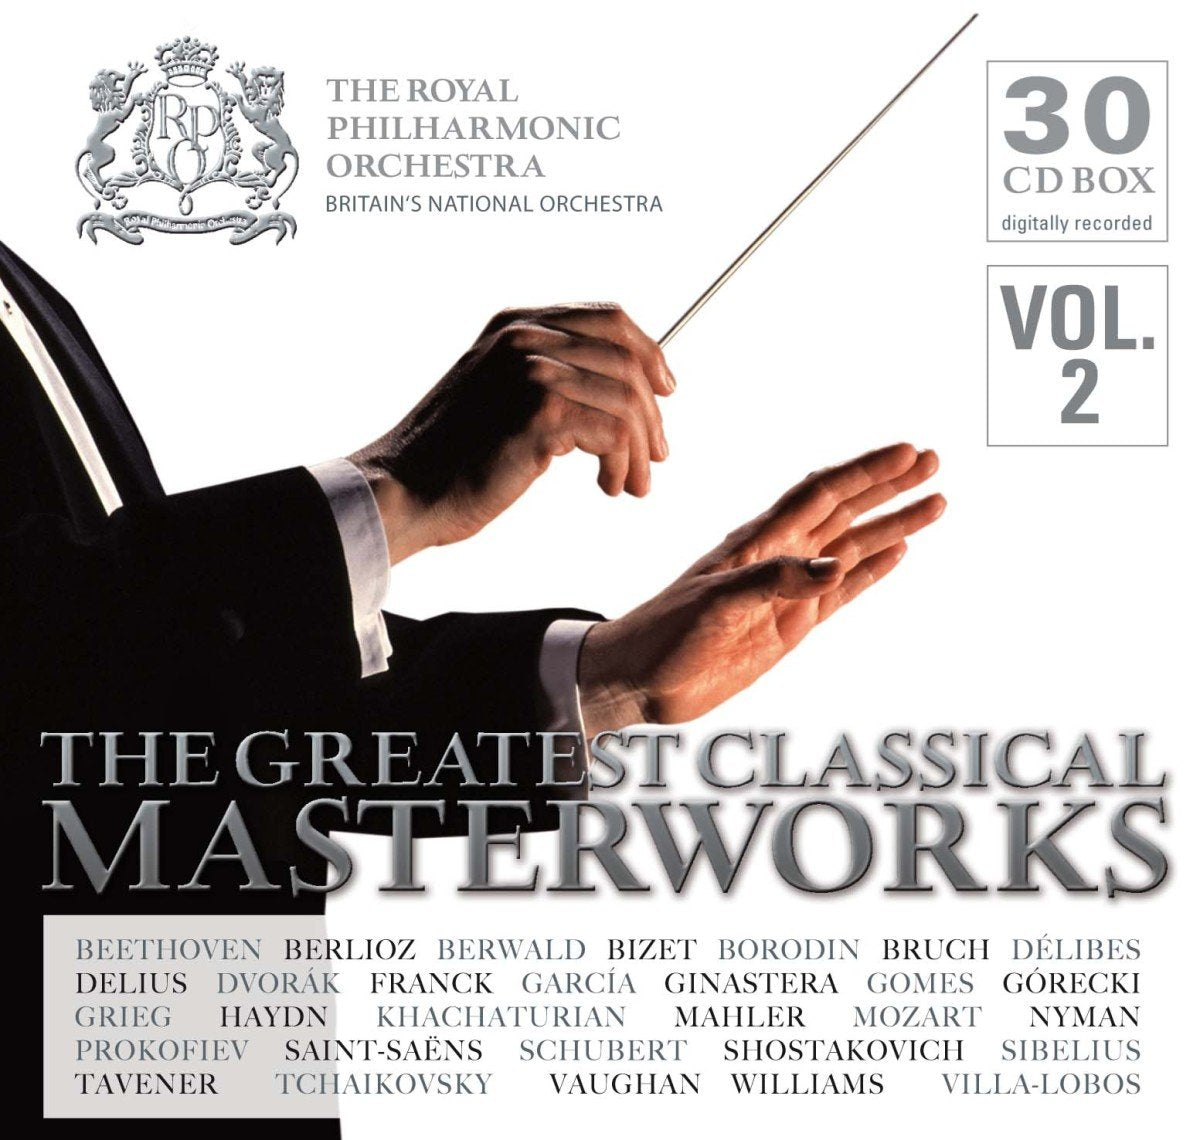 THE GREATEST CLASSICAL MASTERWORKS - THE ROYAL PHILHARMONIC ORCHESTRA (30 CDS)